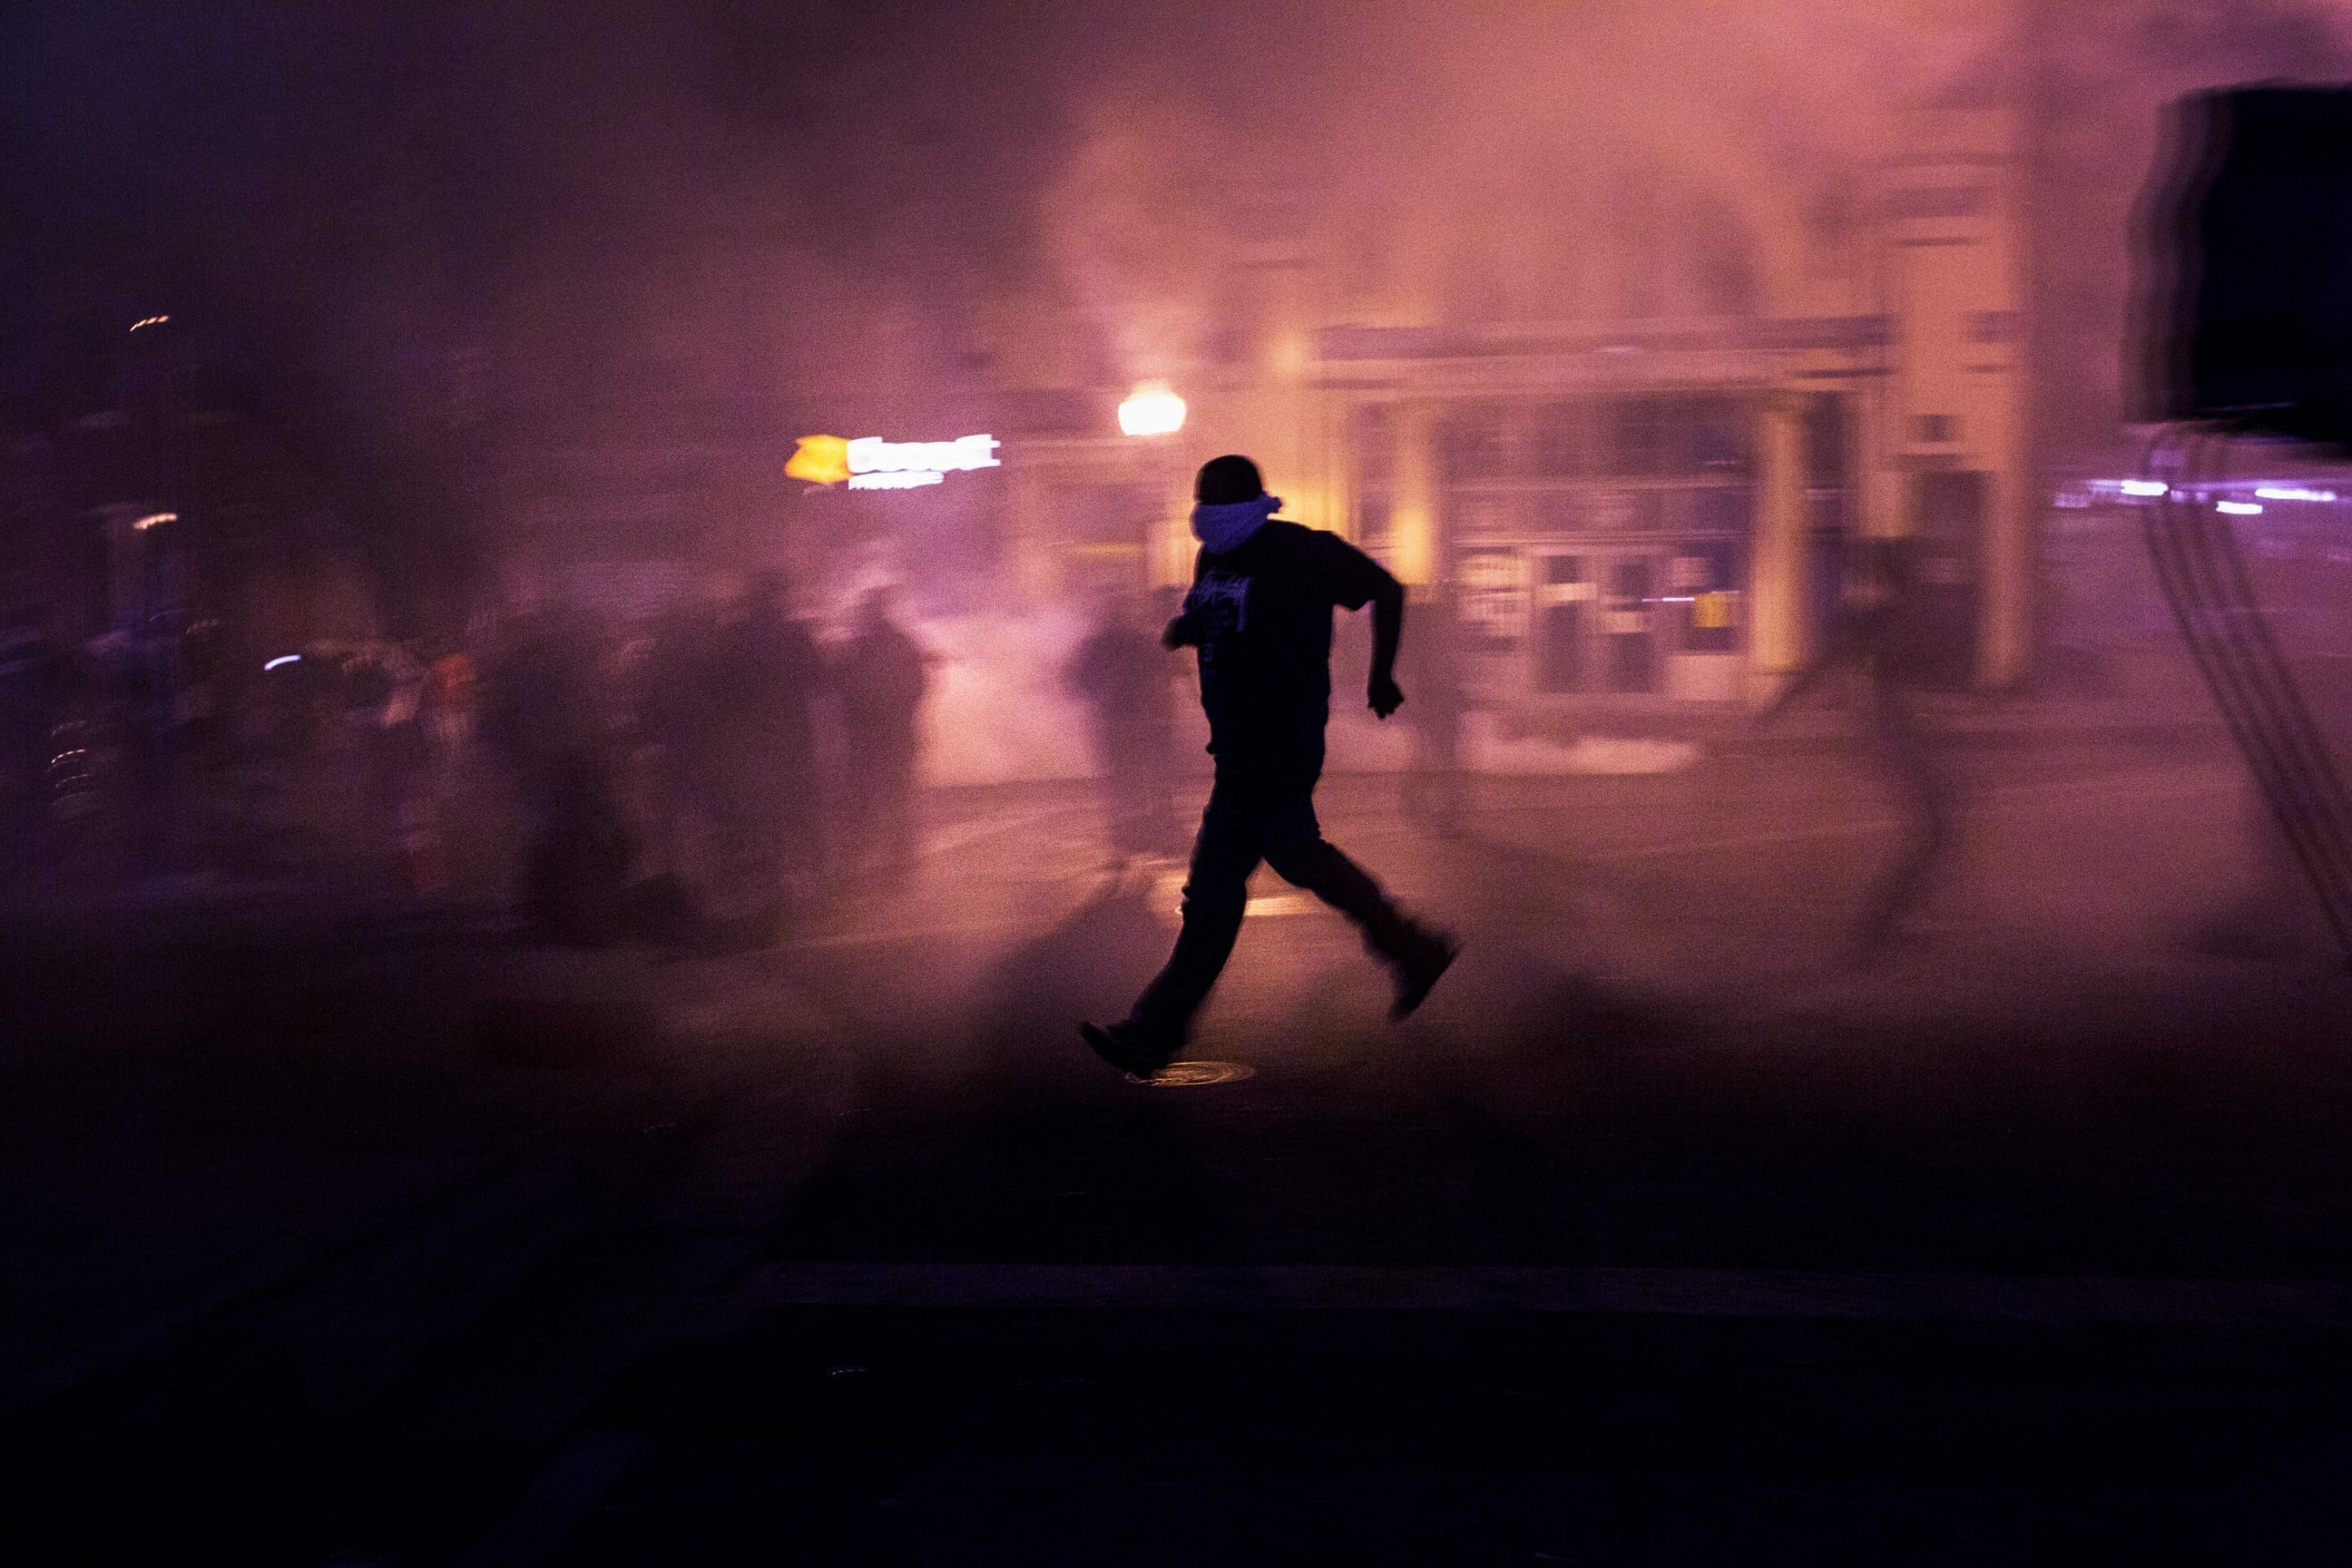 April 28th, 2015. Baltimore, Maryland. Police shoot tear gas to clear the street. Protesters, media, police and national guard converged near the corner of North and Pennsylvania Avenue during protests.